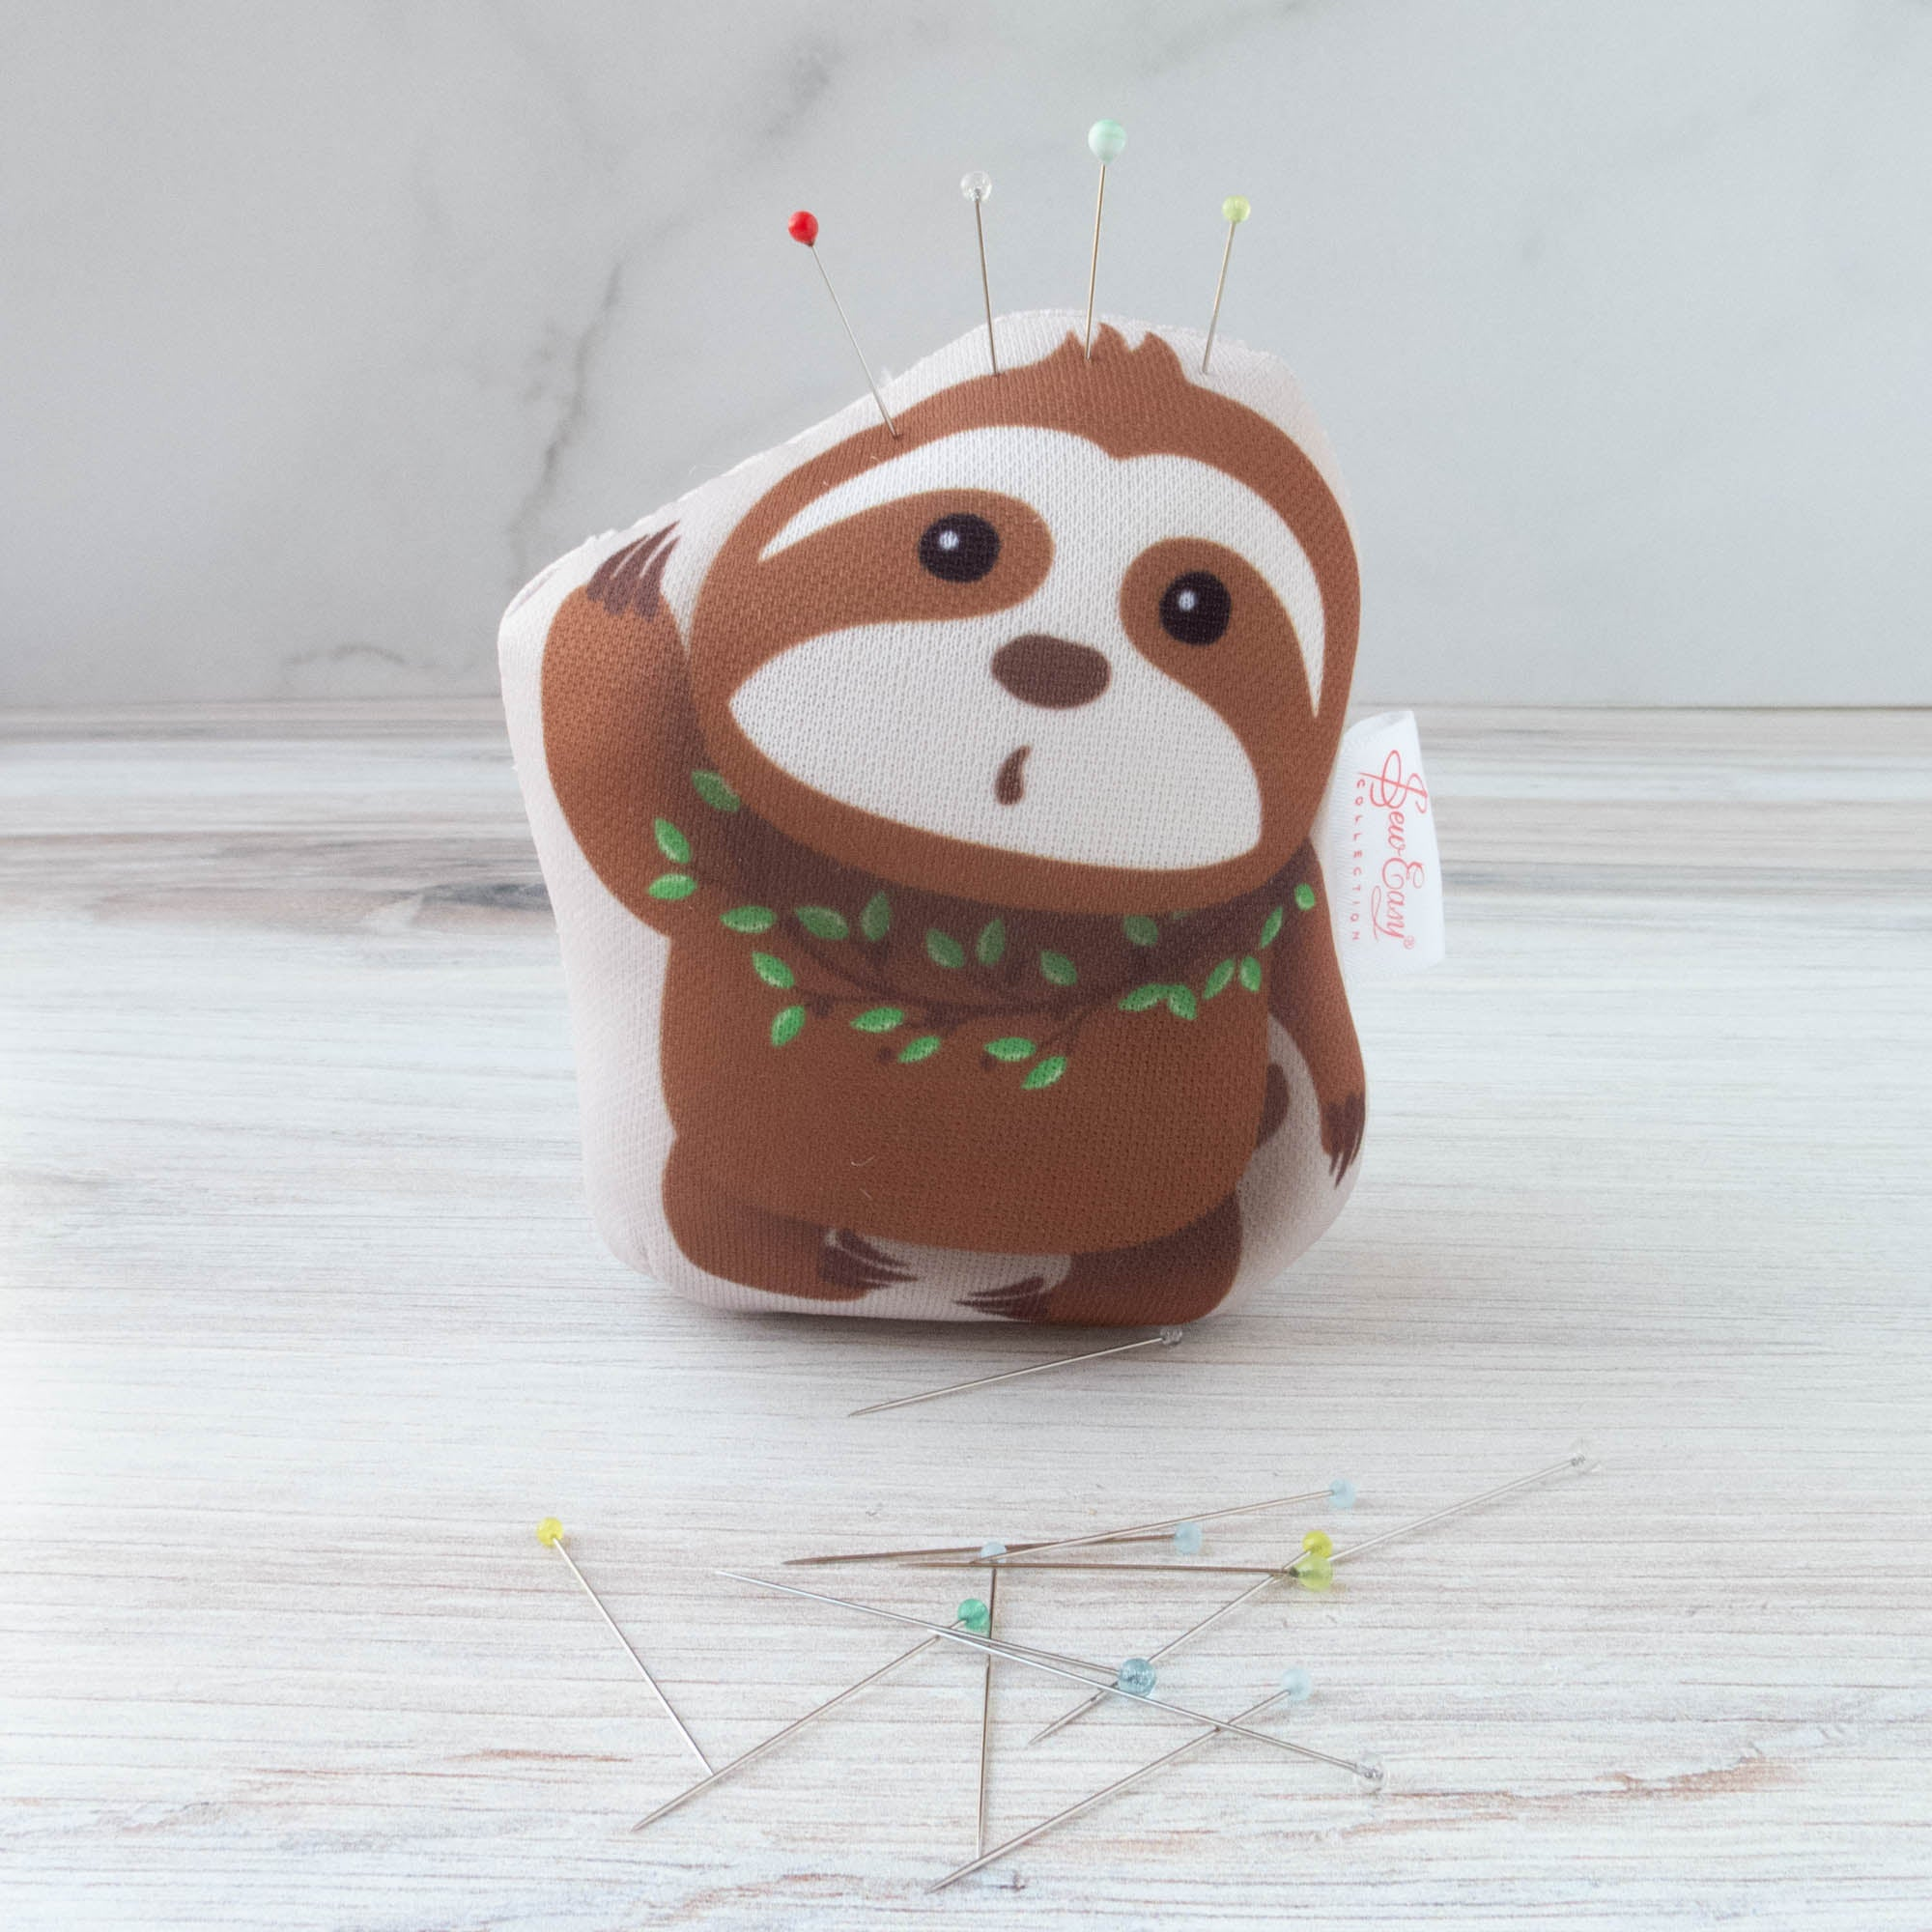 Cute Sloth Pincushion Pincushion - Snuggly Monkey